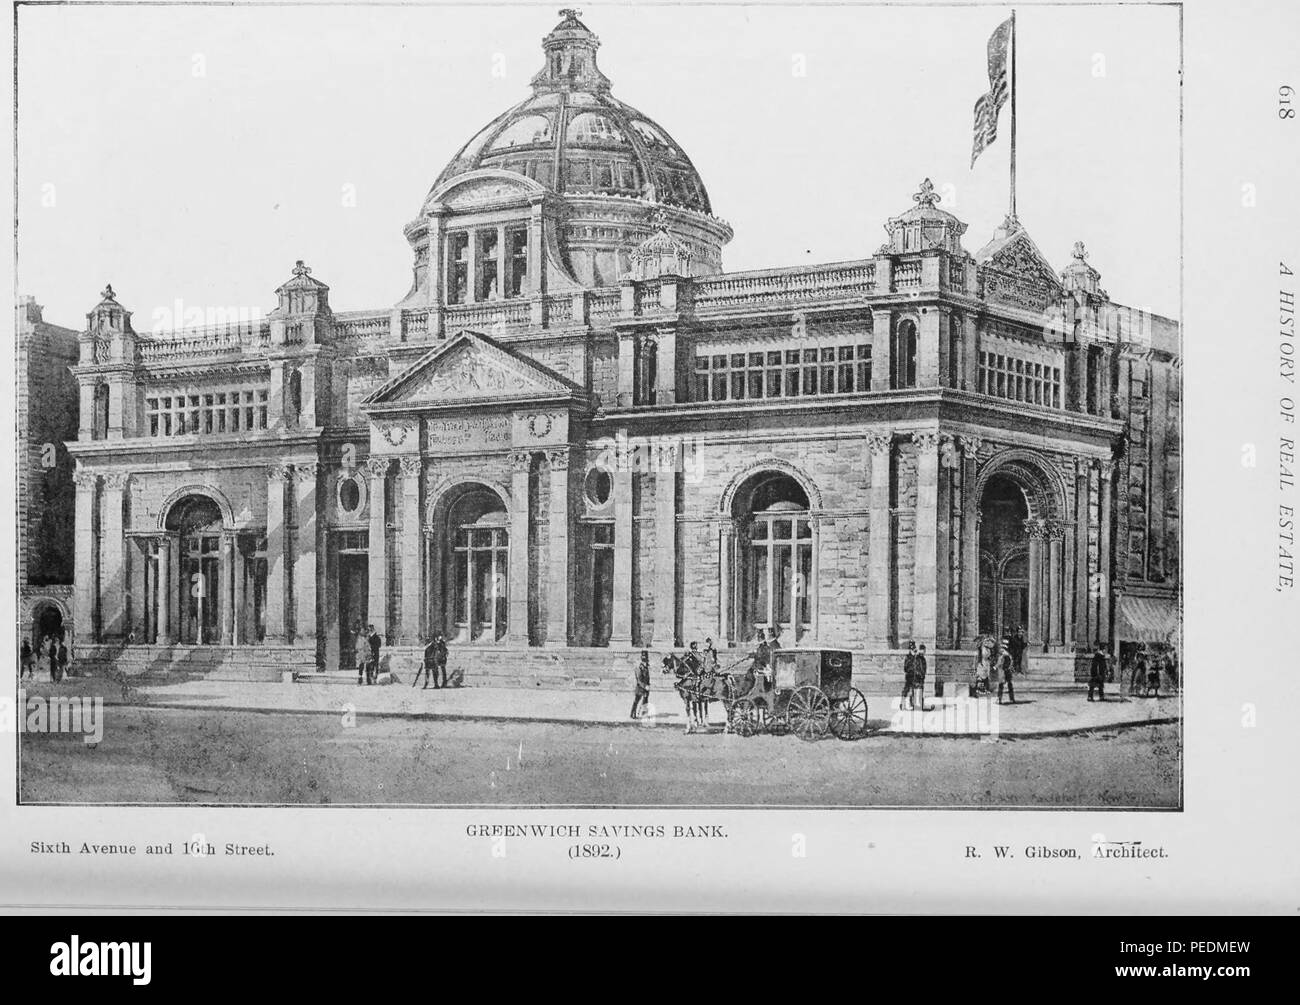 Engraving of the original Greenwich Savings Bank building at 620 6th Avenue, New York City, 1898. Courtesy Internet Archive. () - Stock Image